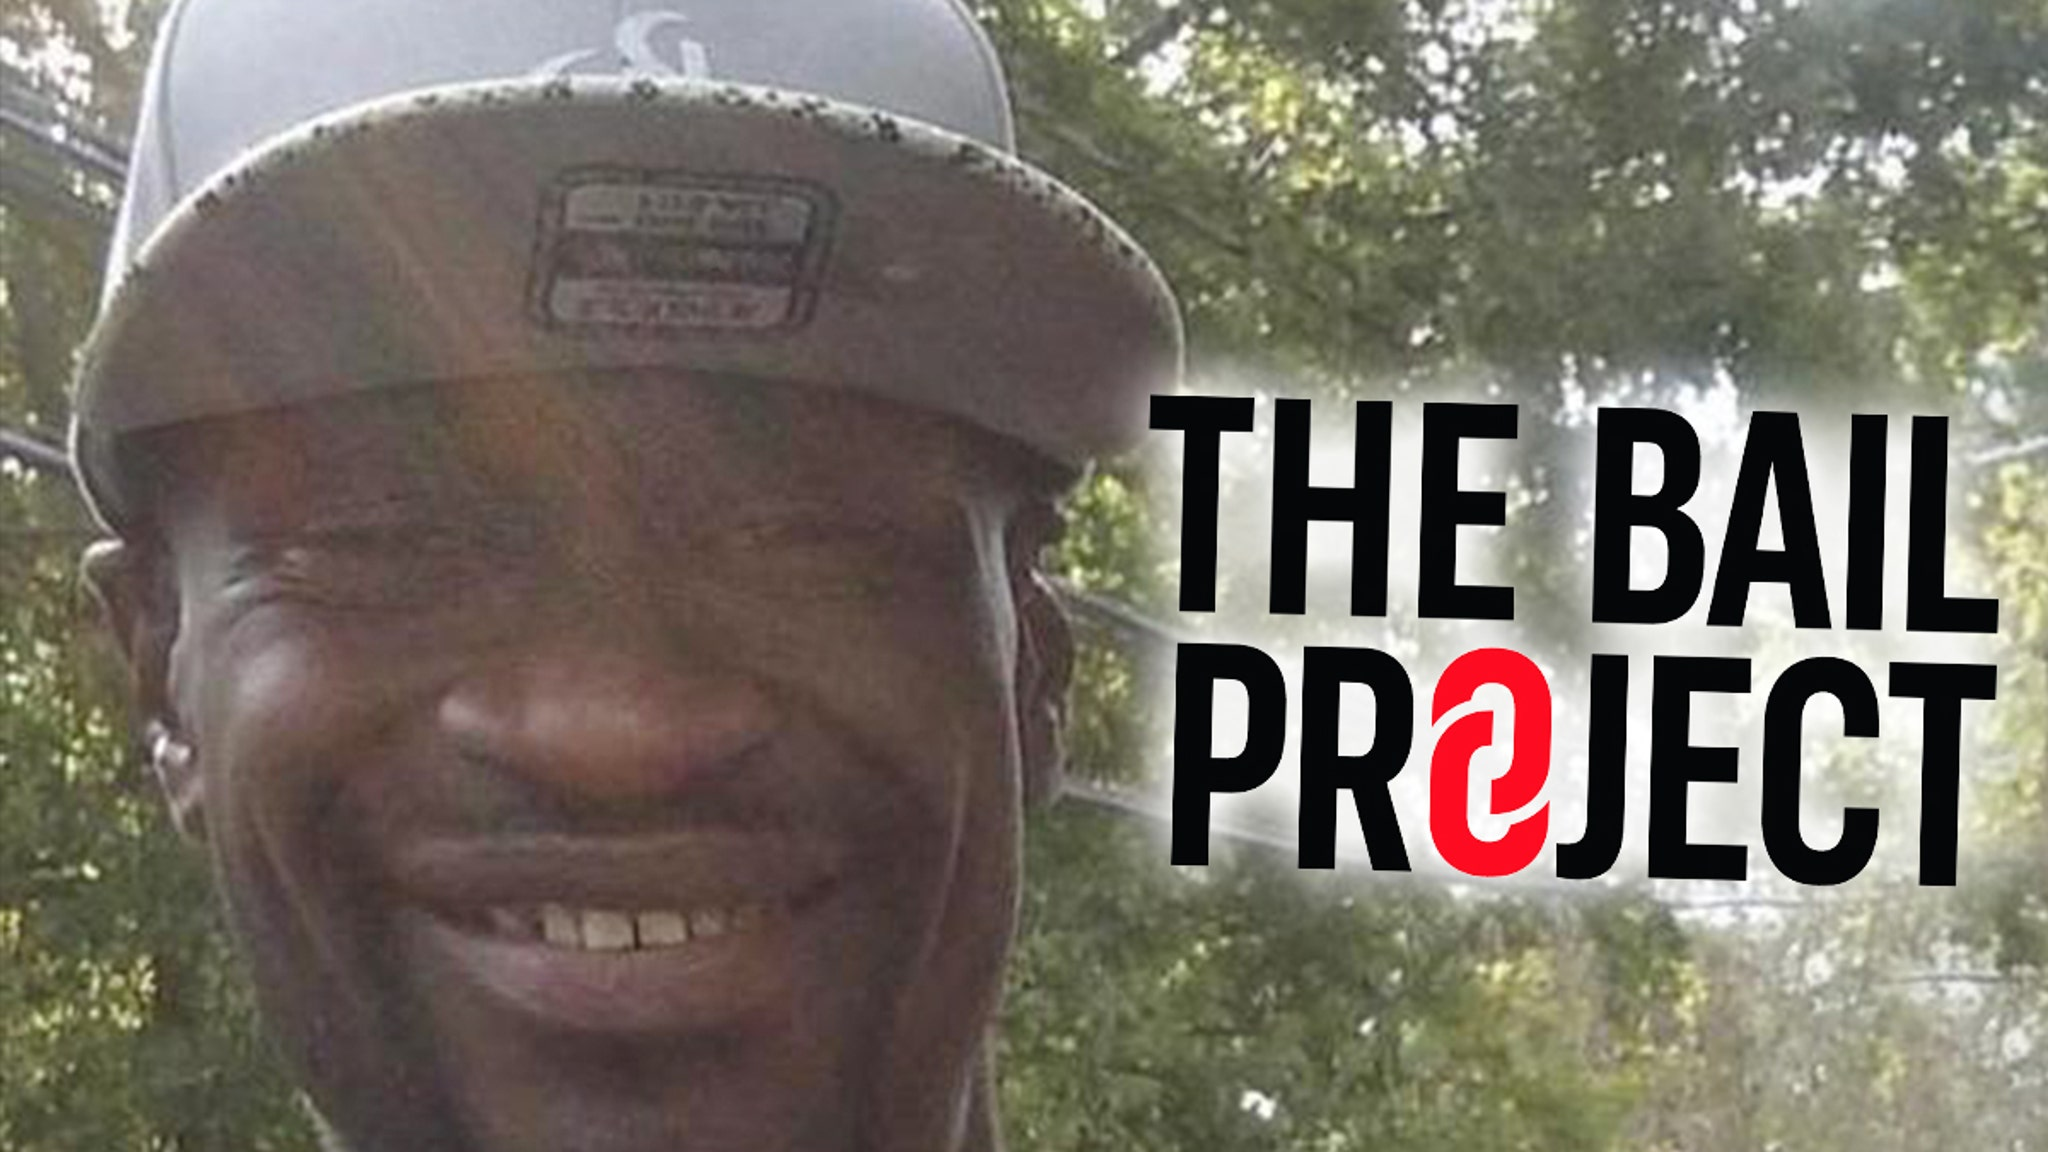 The Bail Project Received $15 Million Since George Floyd's Death